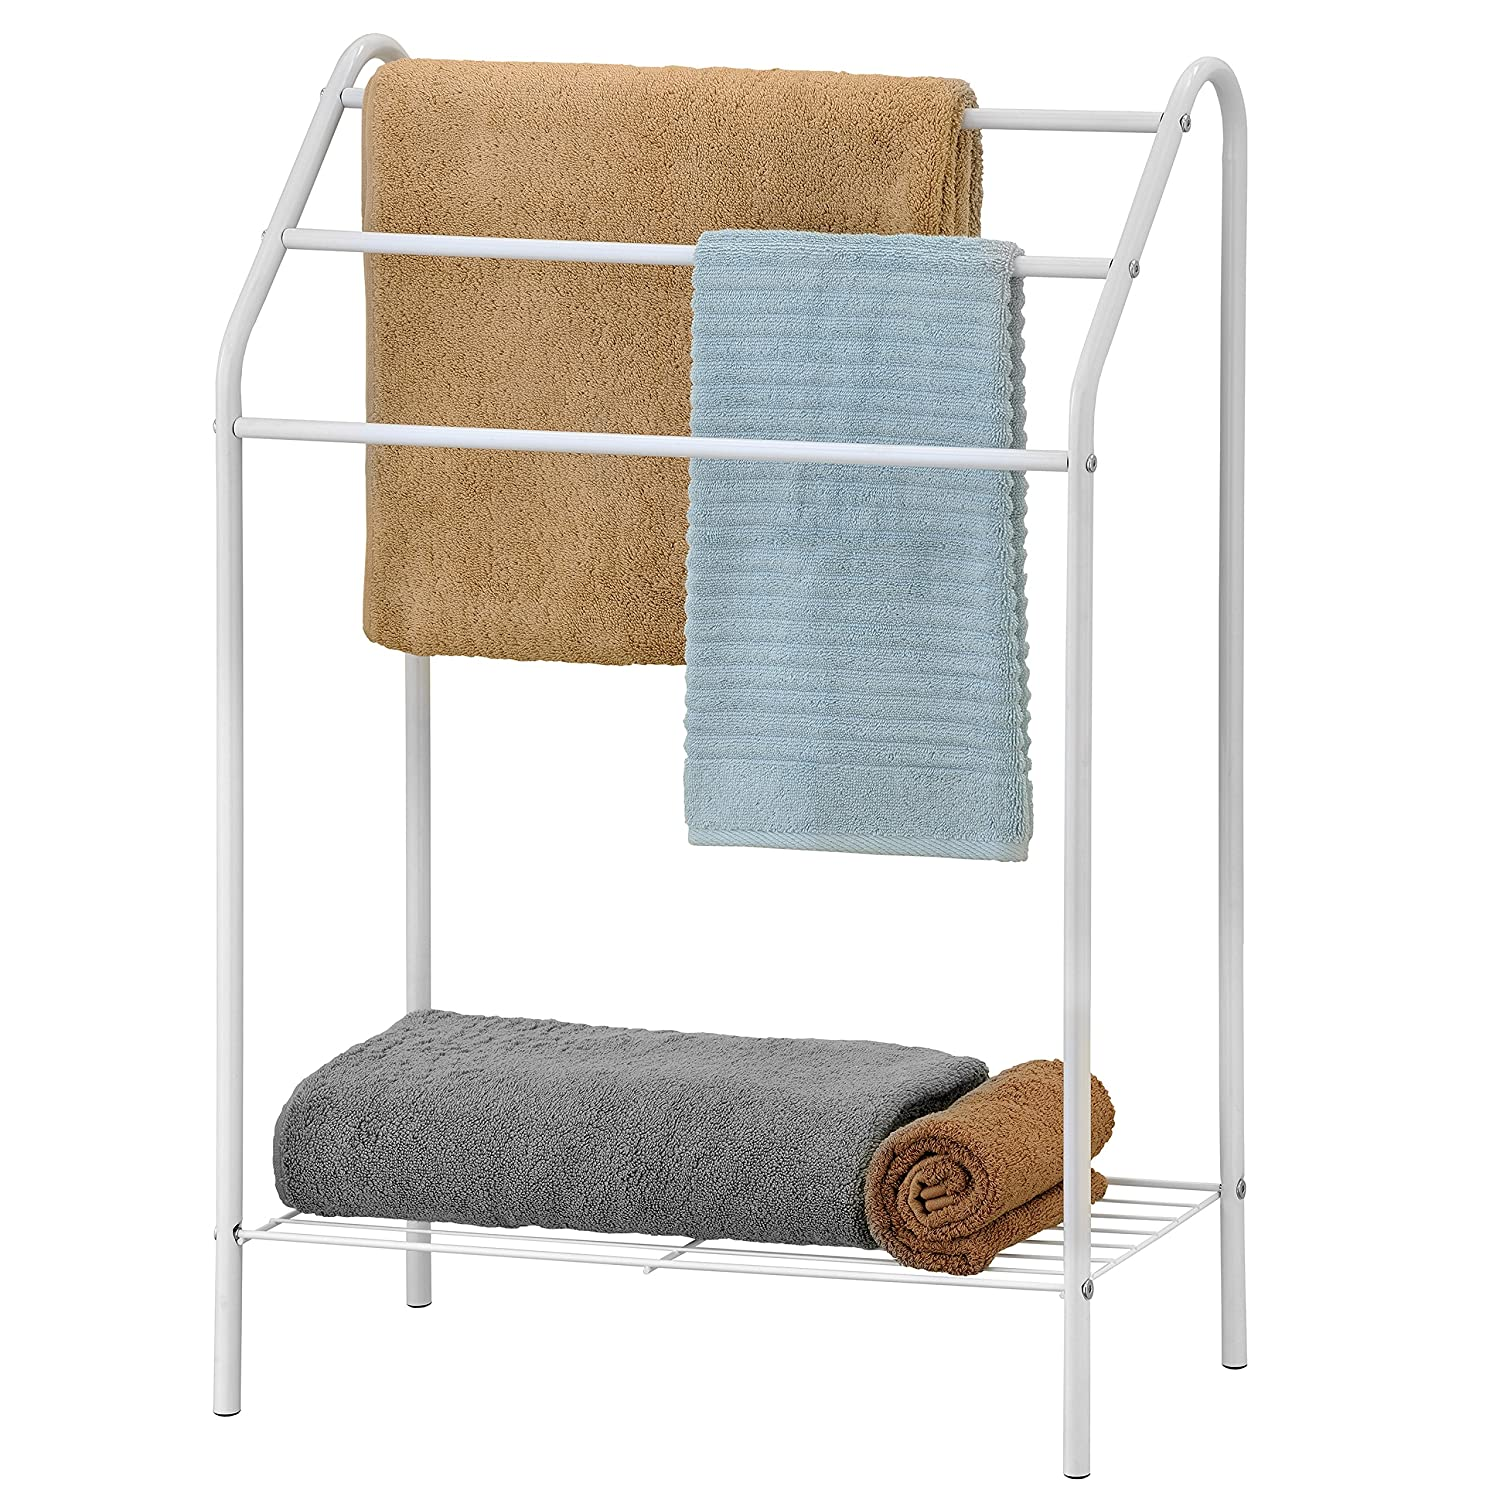 Amazon.com: Freestanding 3 Tier Metal Towel Rack, Chrome Bathroom ...